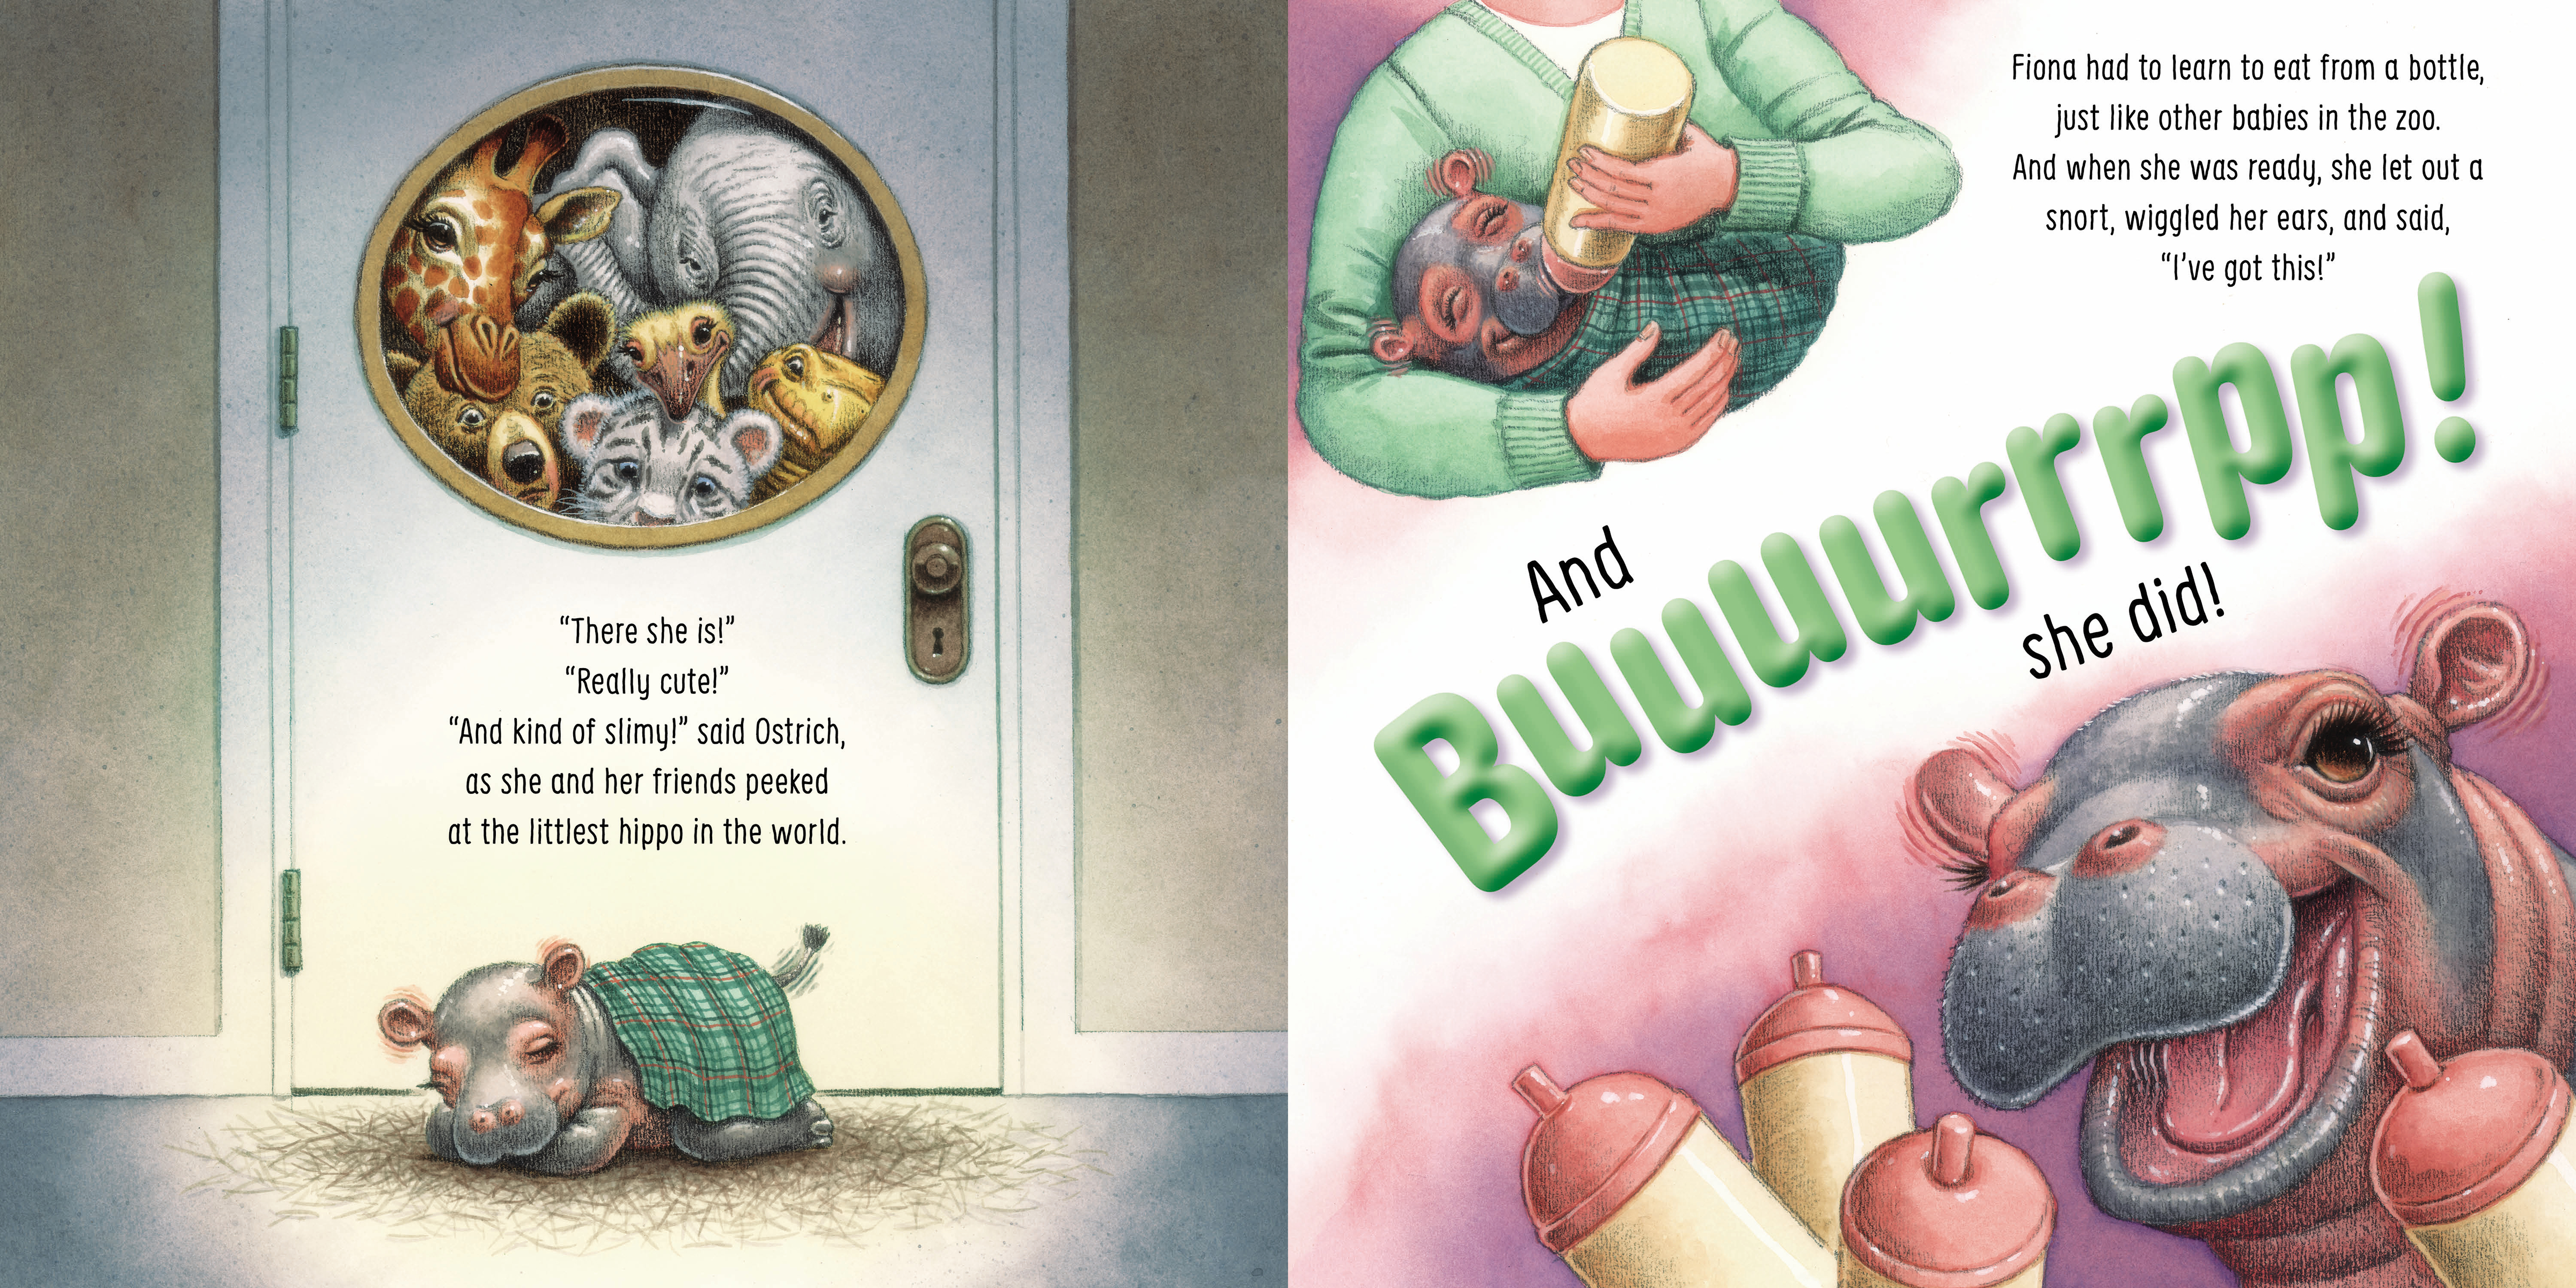 celebrate-picture-books-picture-book-review-fiona-the-hippo-zoo-bottle-fed